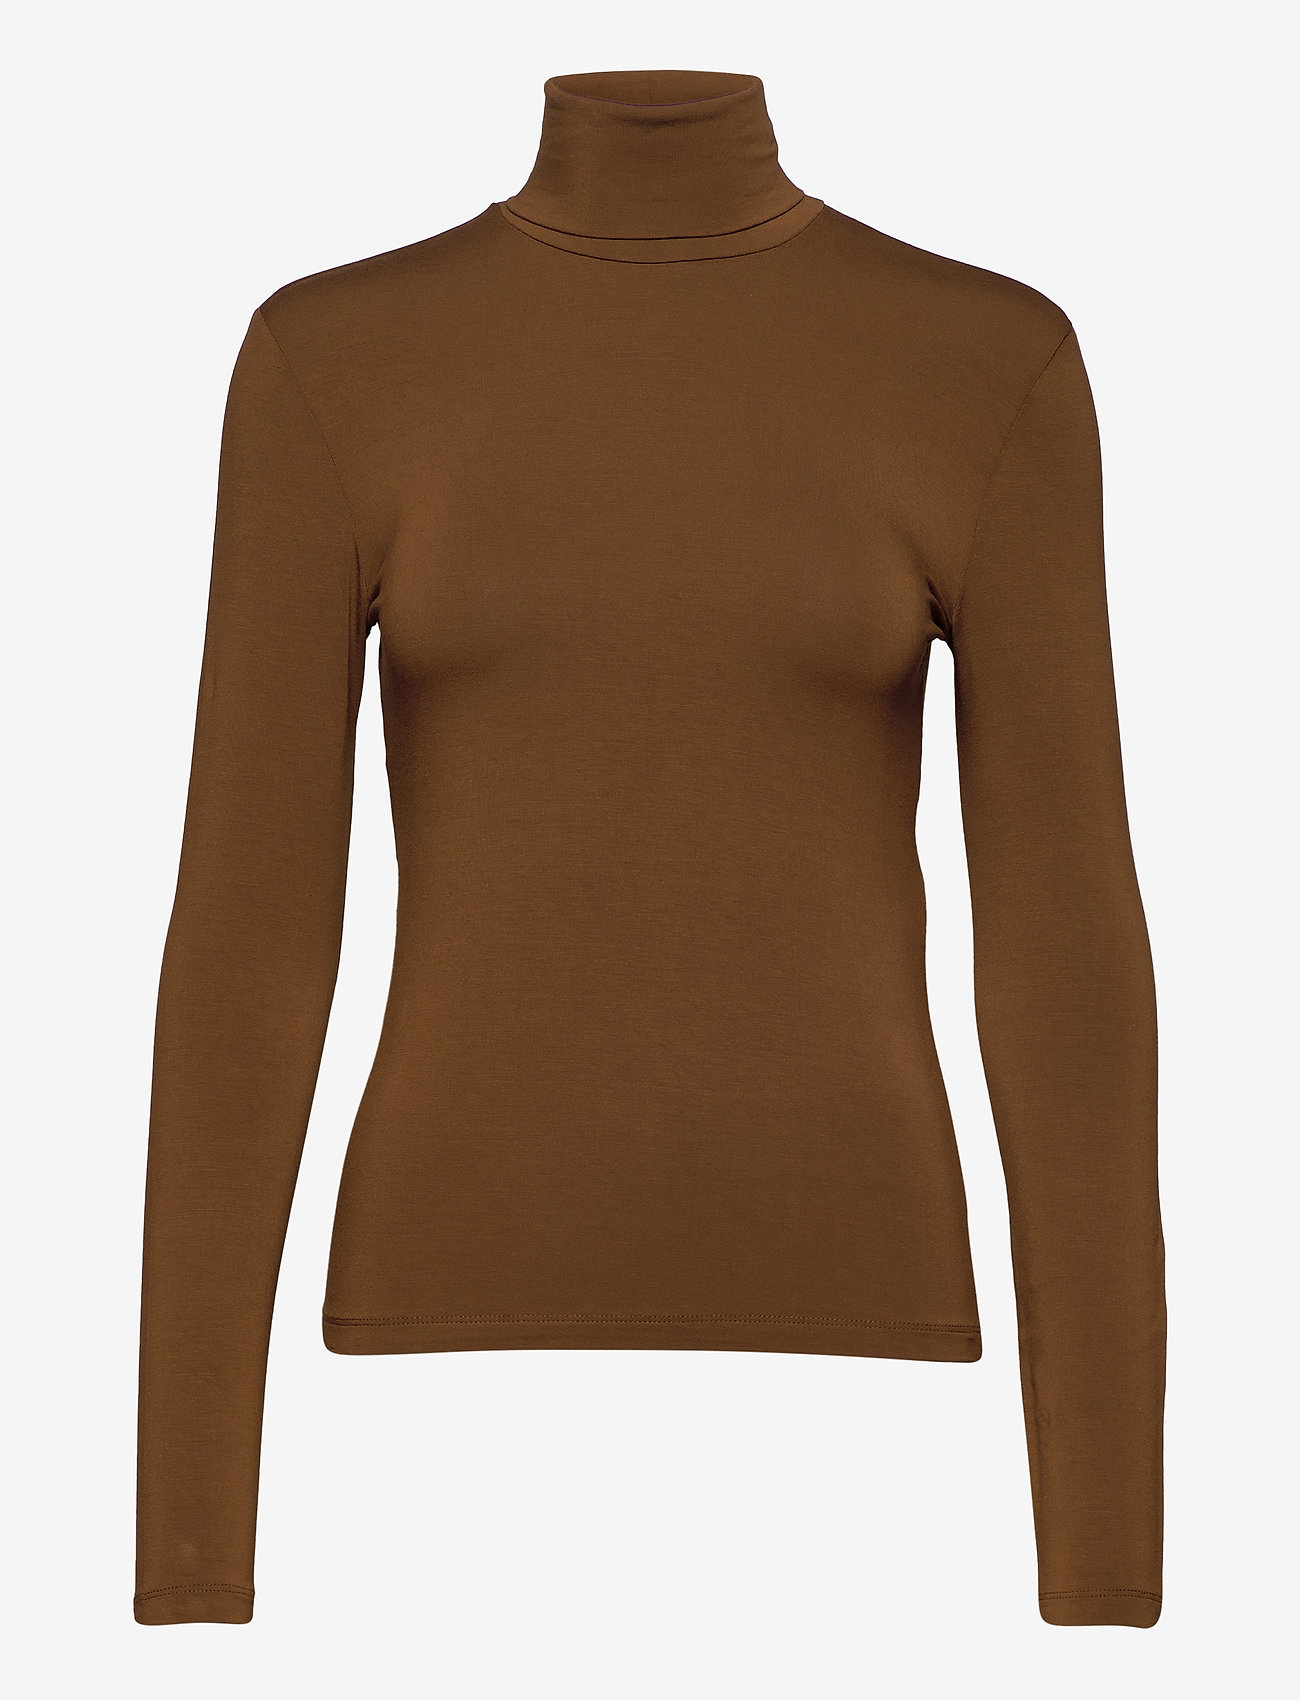 Max Mara Leisure - FRESIS - getrickte tops - hazelnut brown - 0